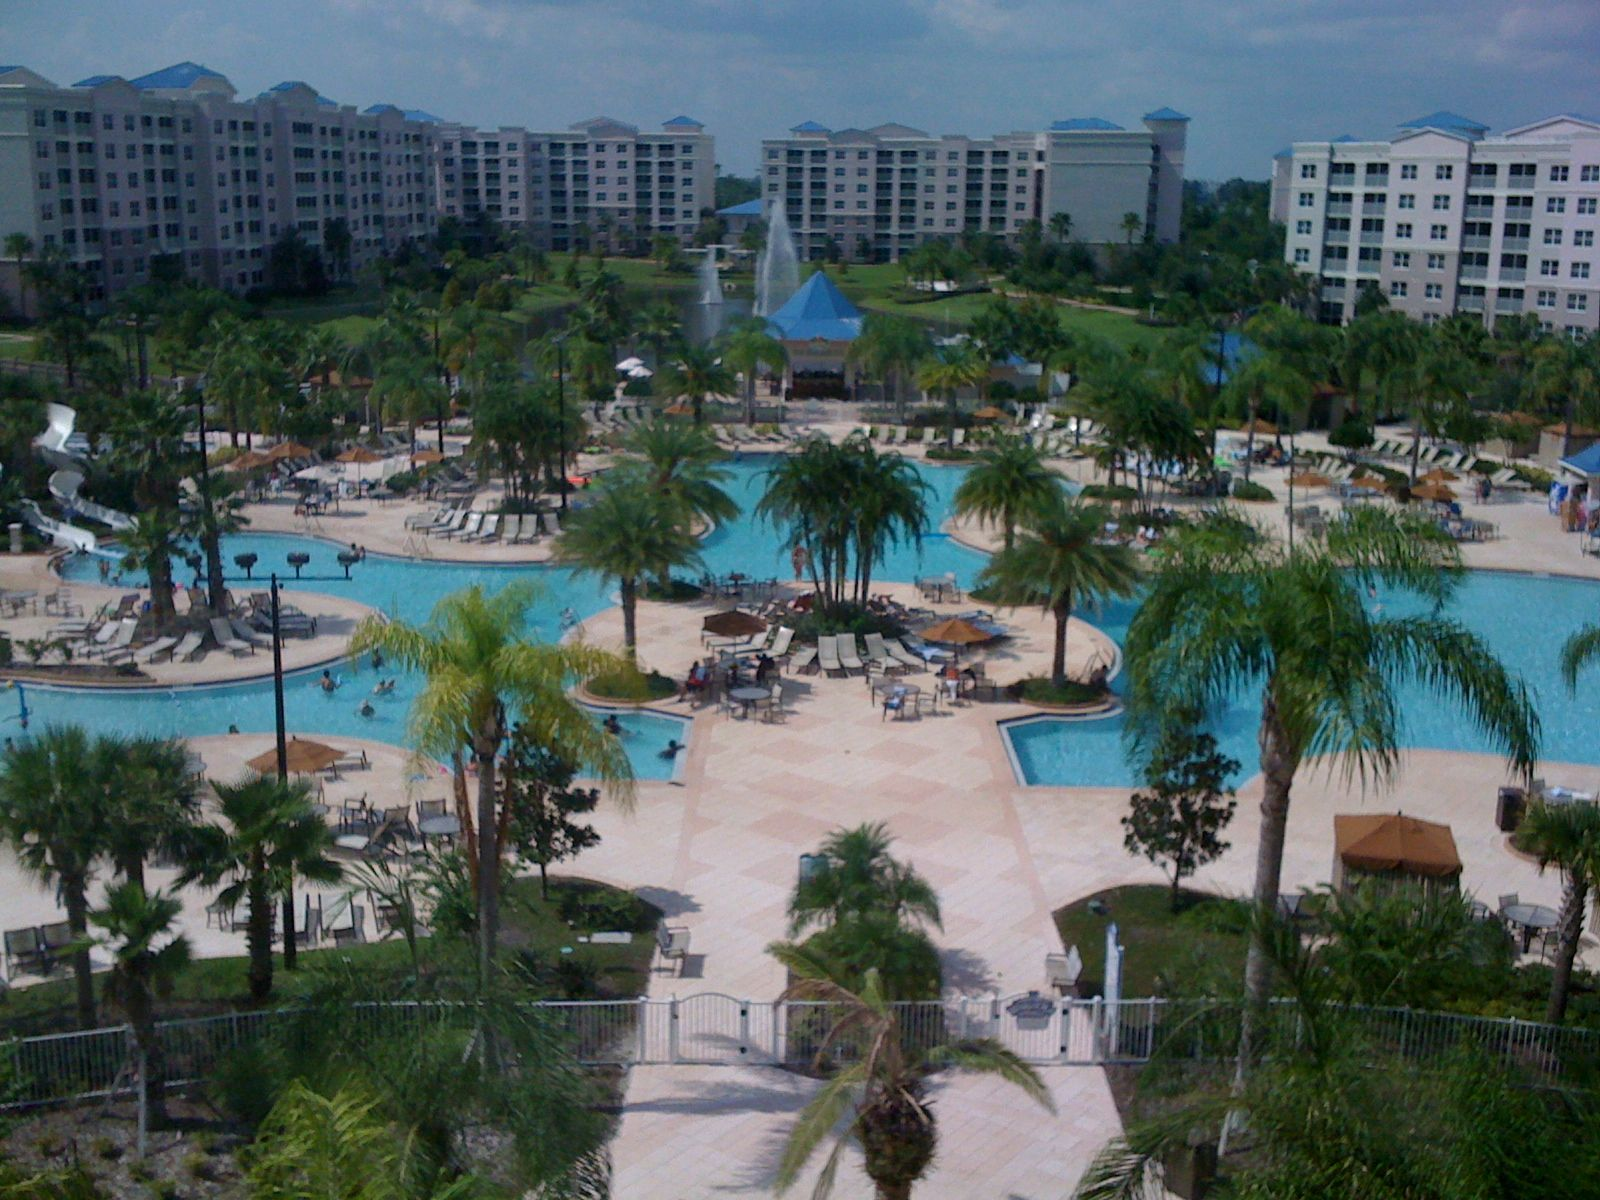 BlueGreen Resort at Orlando, FL | Places I've Been | Pinterest ...